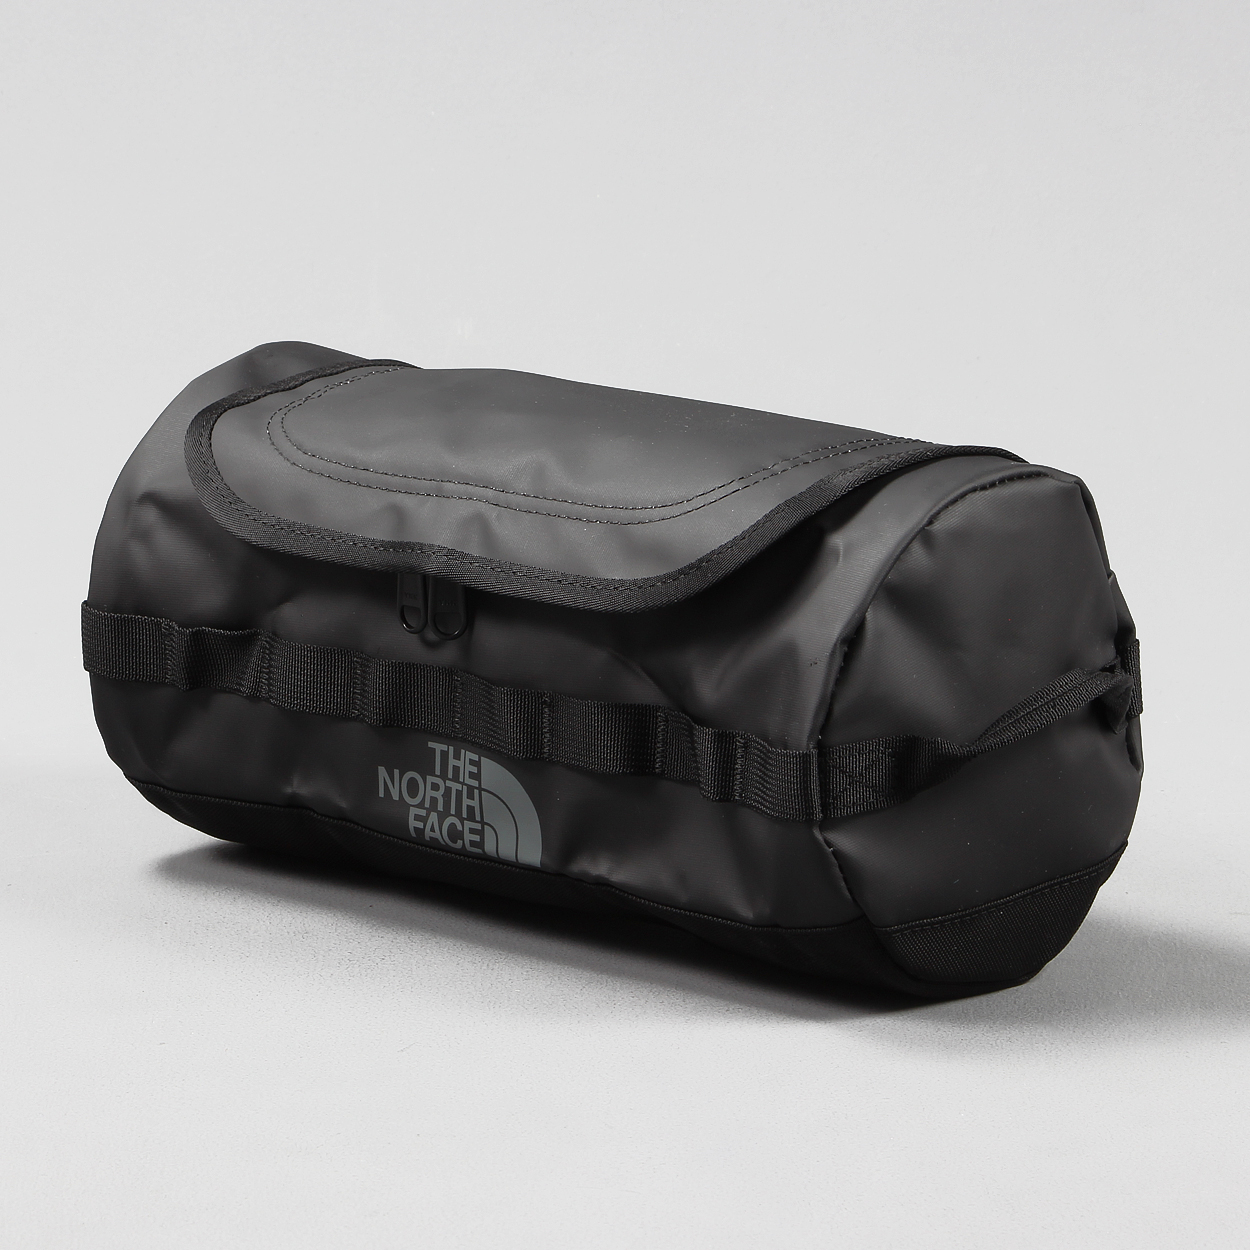 c57dc3520 The North Face Luggage Base Camp Travel Canister Large Black £21.00